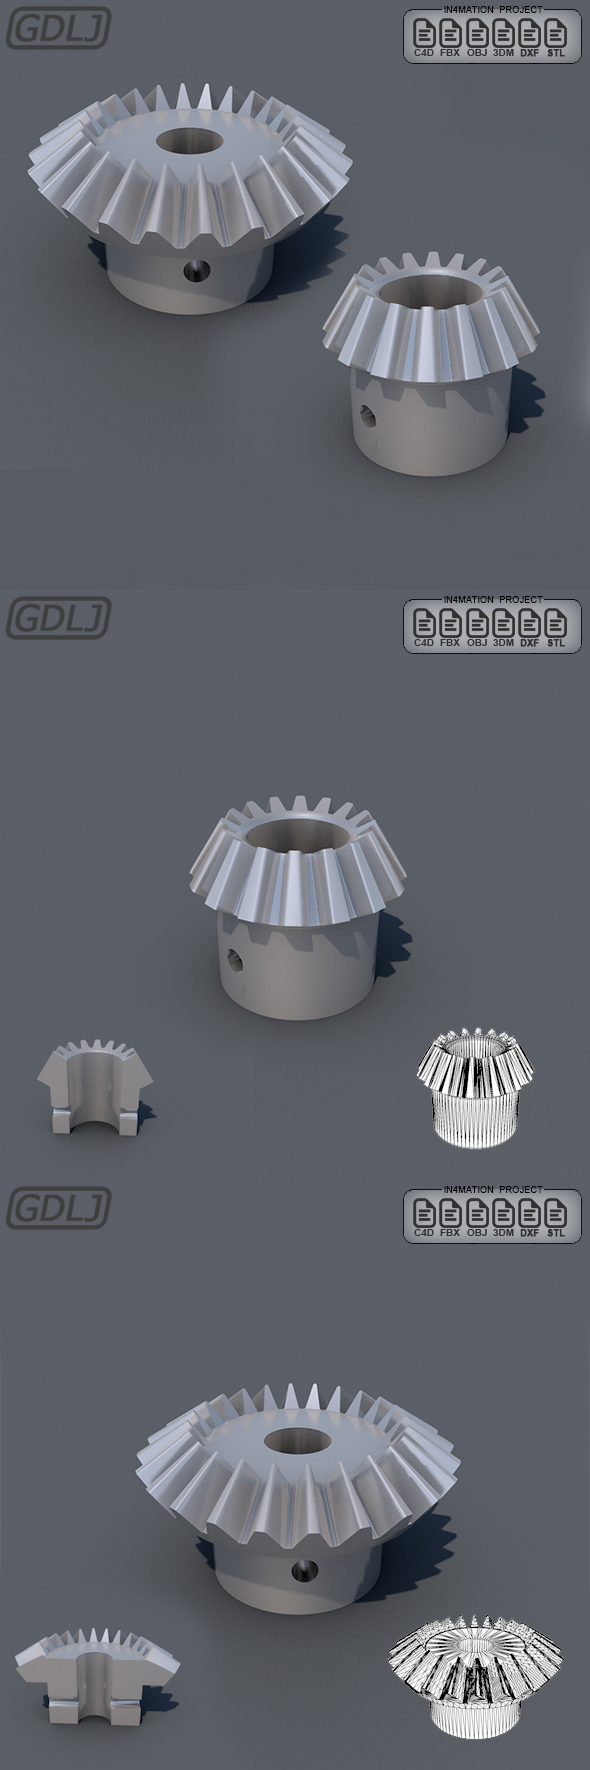 Conical gears 3D Models With STL file 3D Printers - 3DOcean Item for Sale